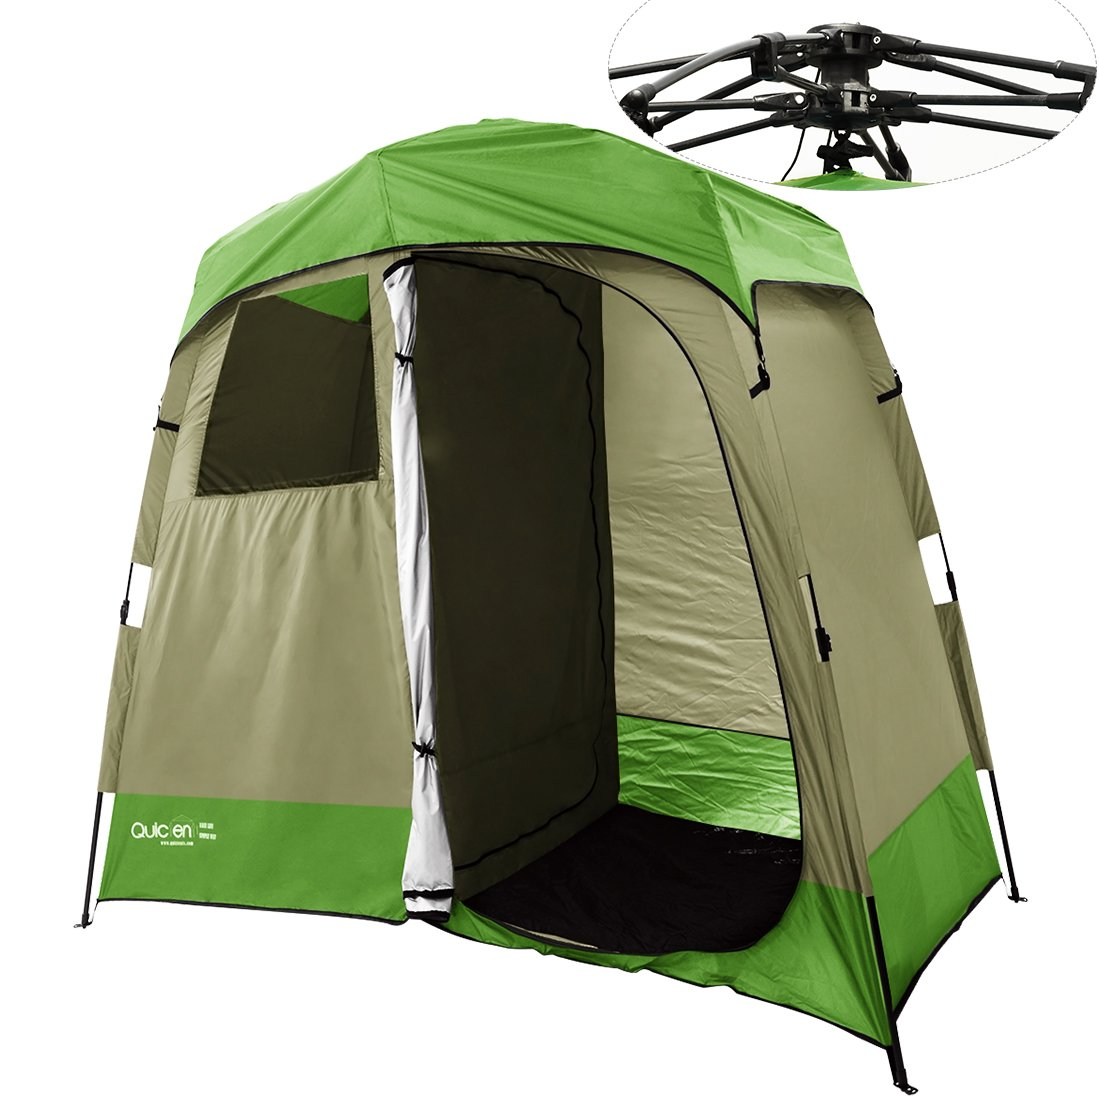 Best Shower Tent for Camping (2018 and reviews)